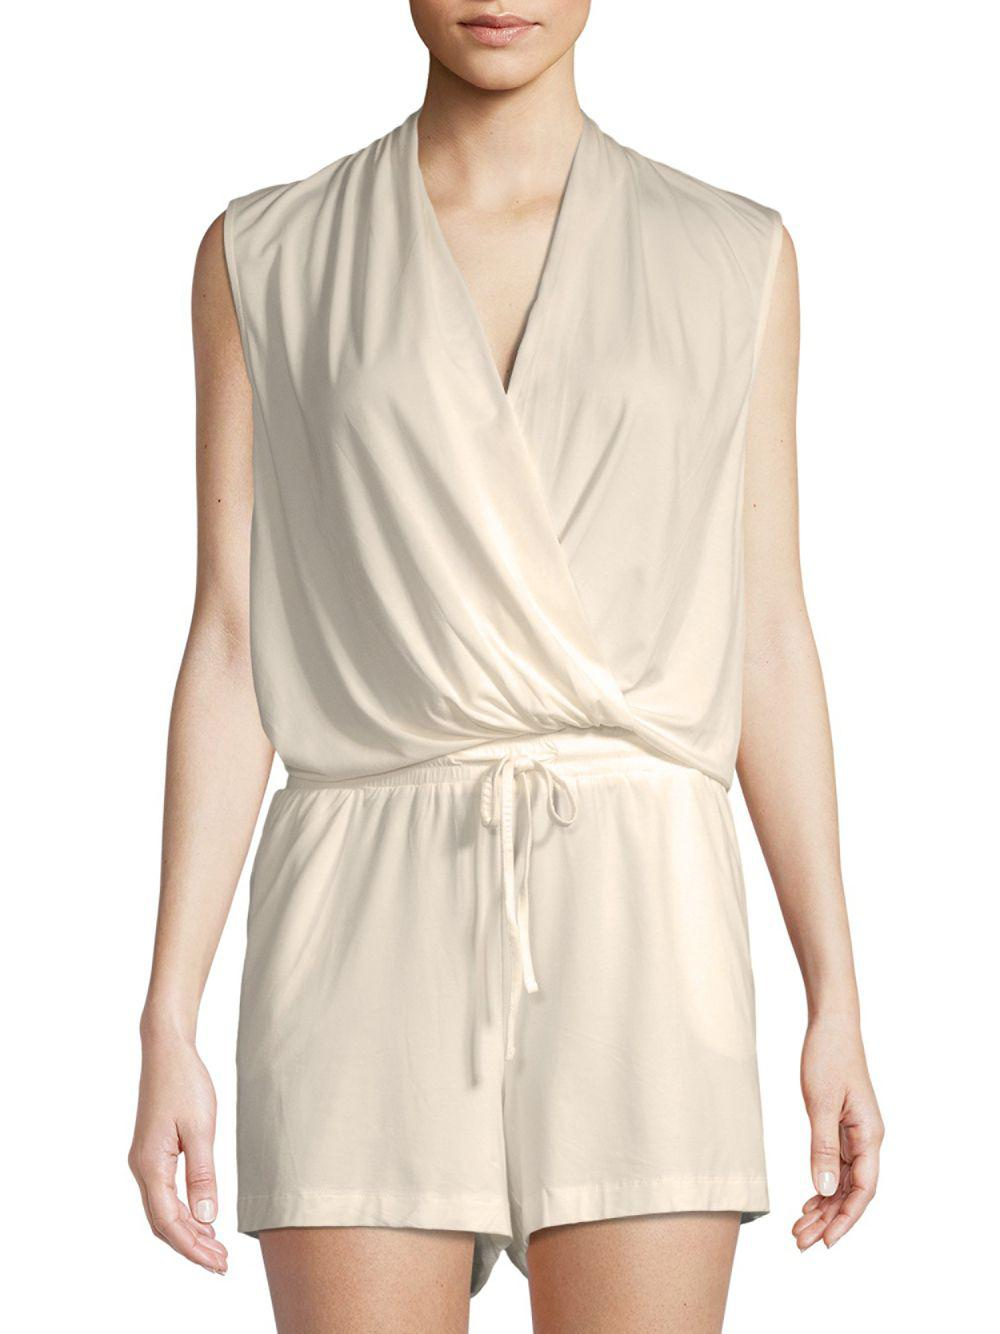 7e0d19f571b8 UGG Kami Lounge Romper in Natural - Lyst